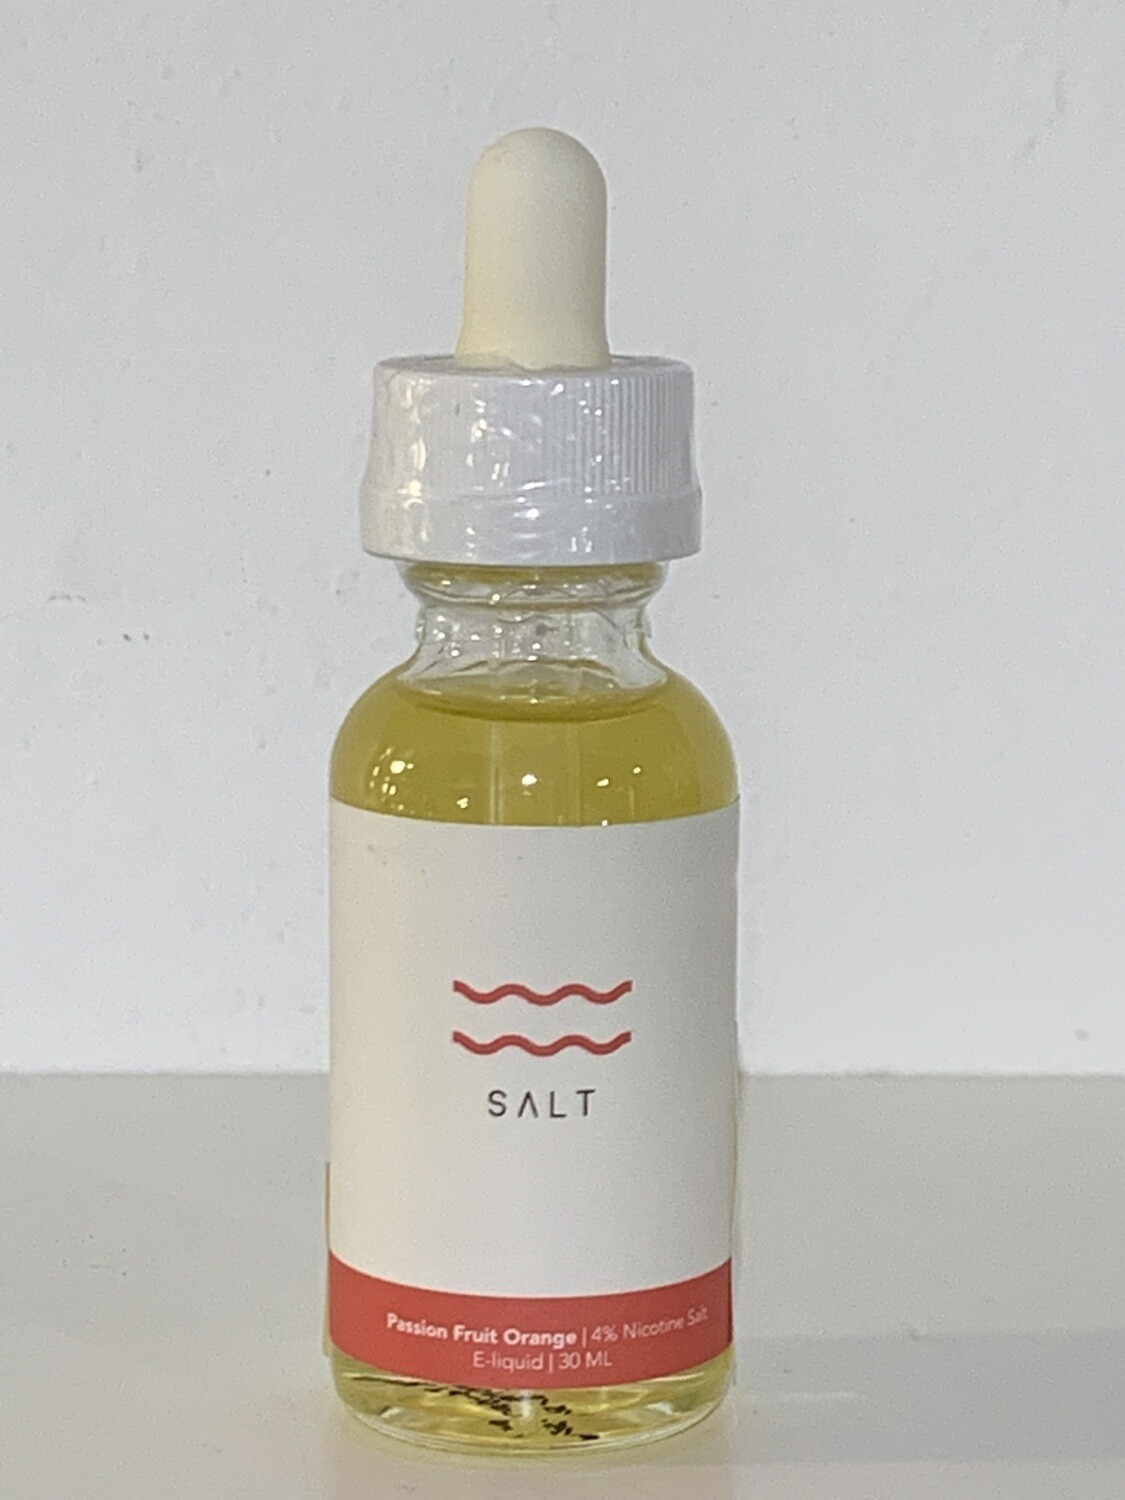 Salt By CRFT 40mg Passion Fruit Orange